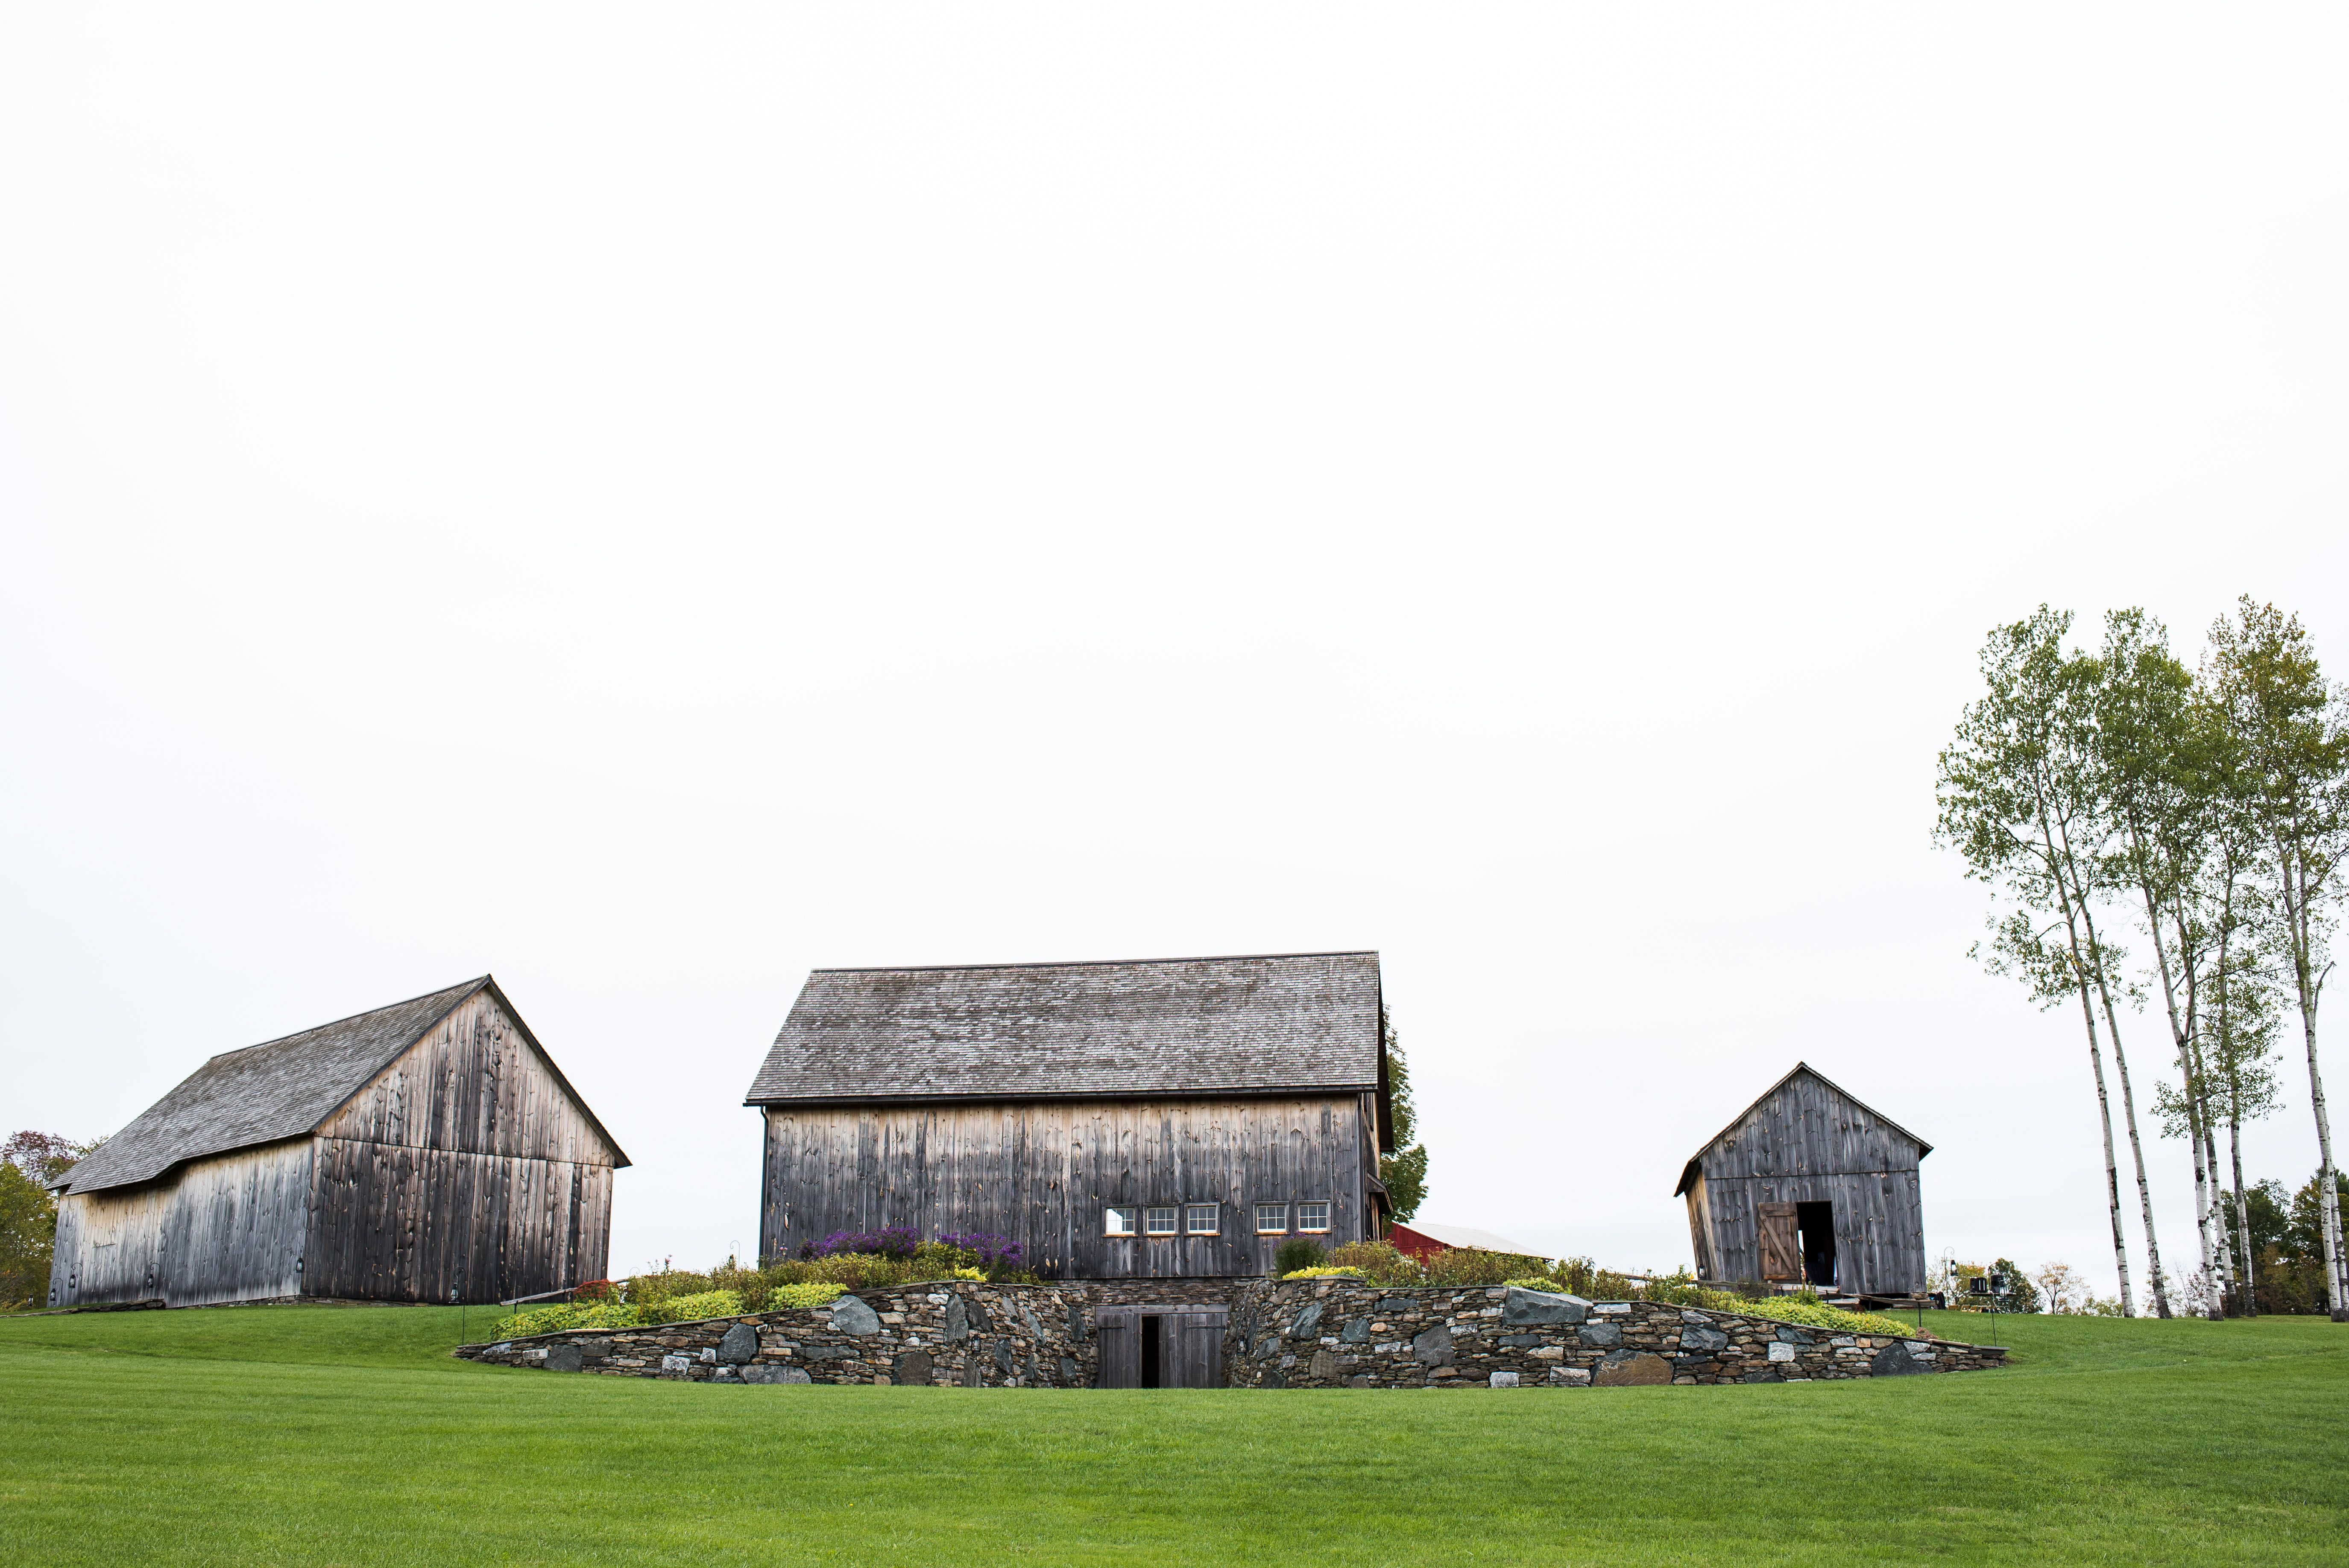 50s wedding decoration ideas  The Historic Barns of Nipmoose perched on a grassy knoll in the